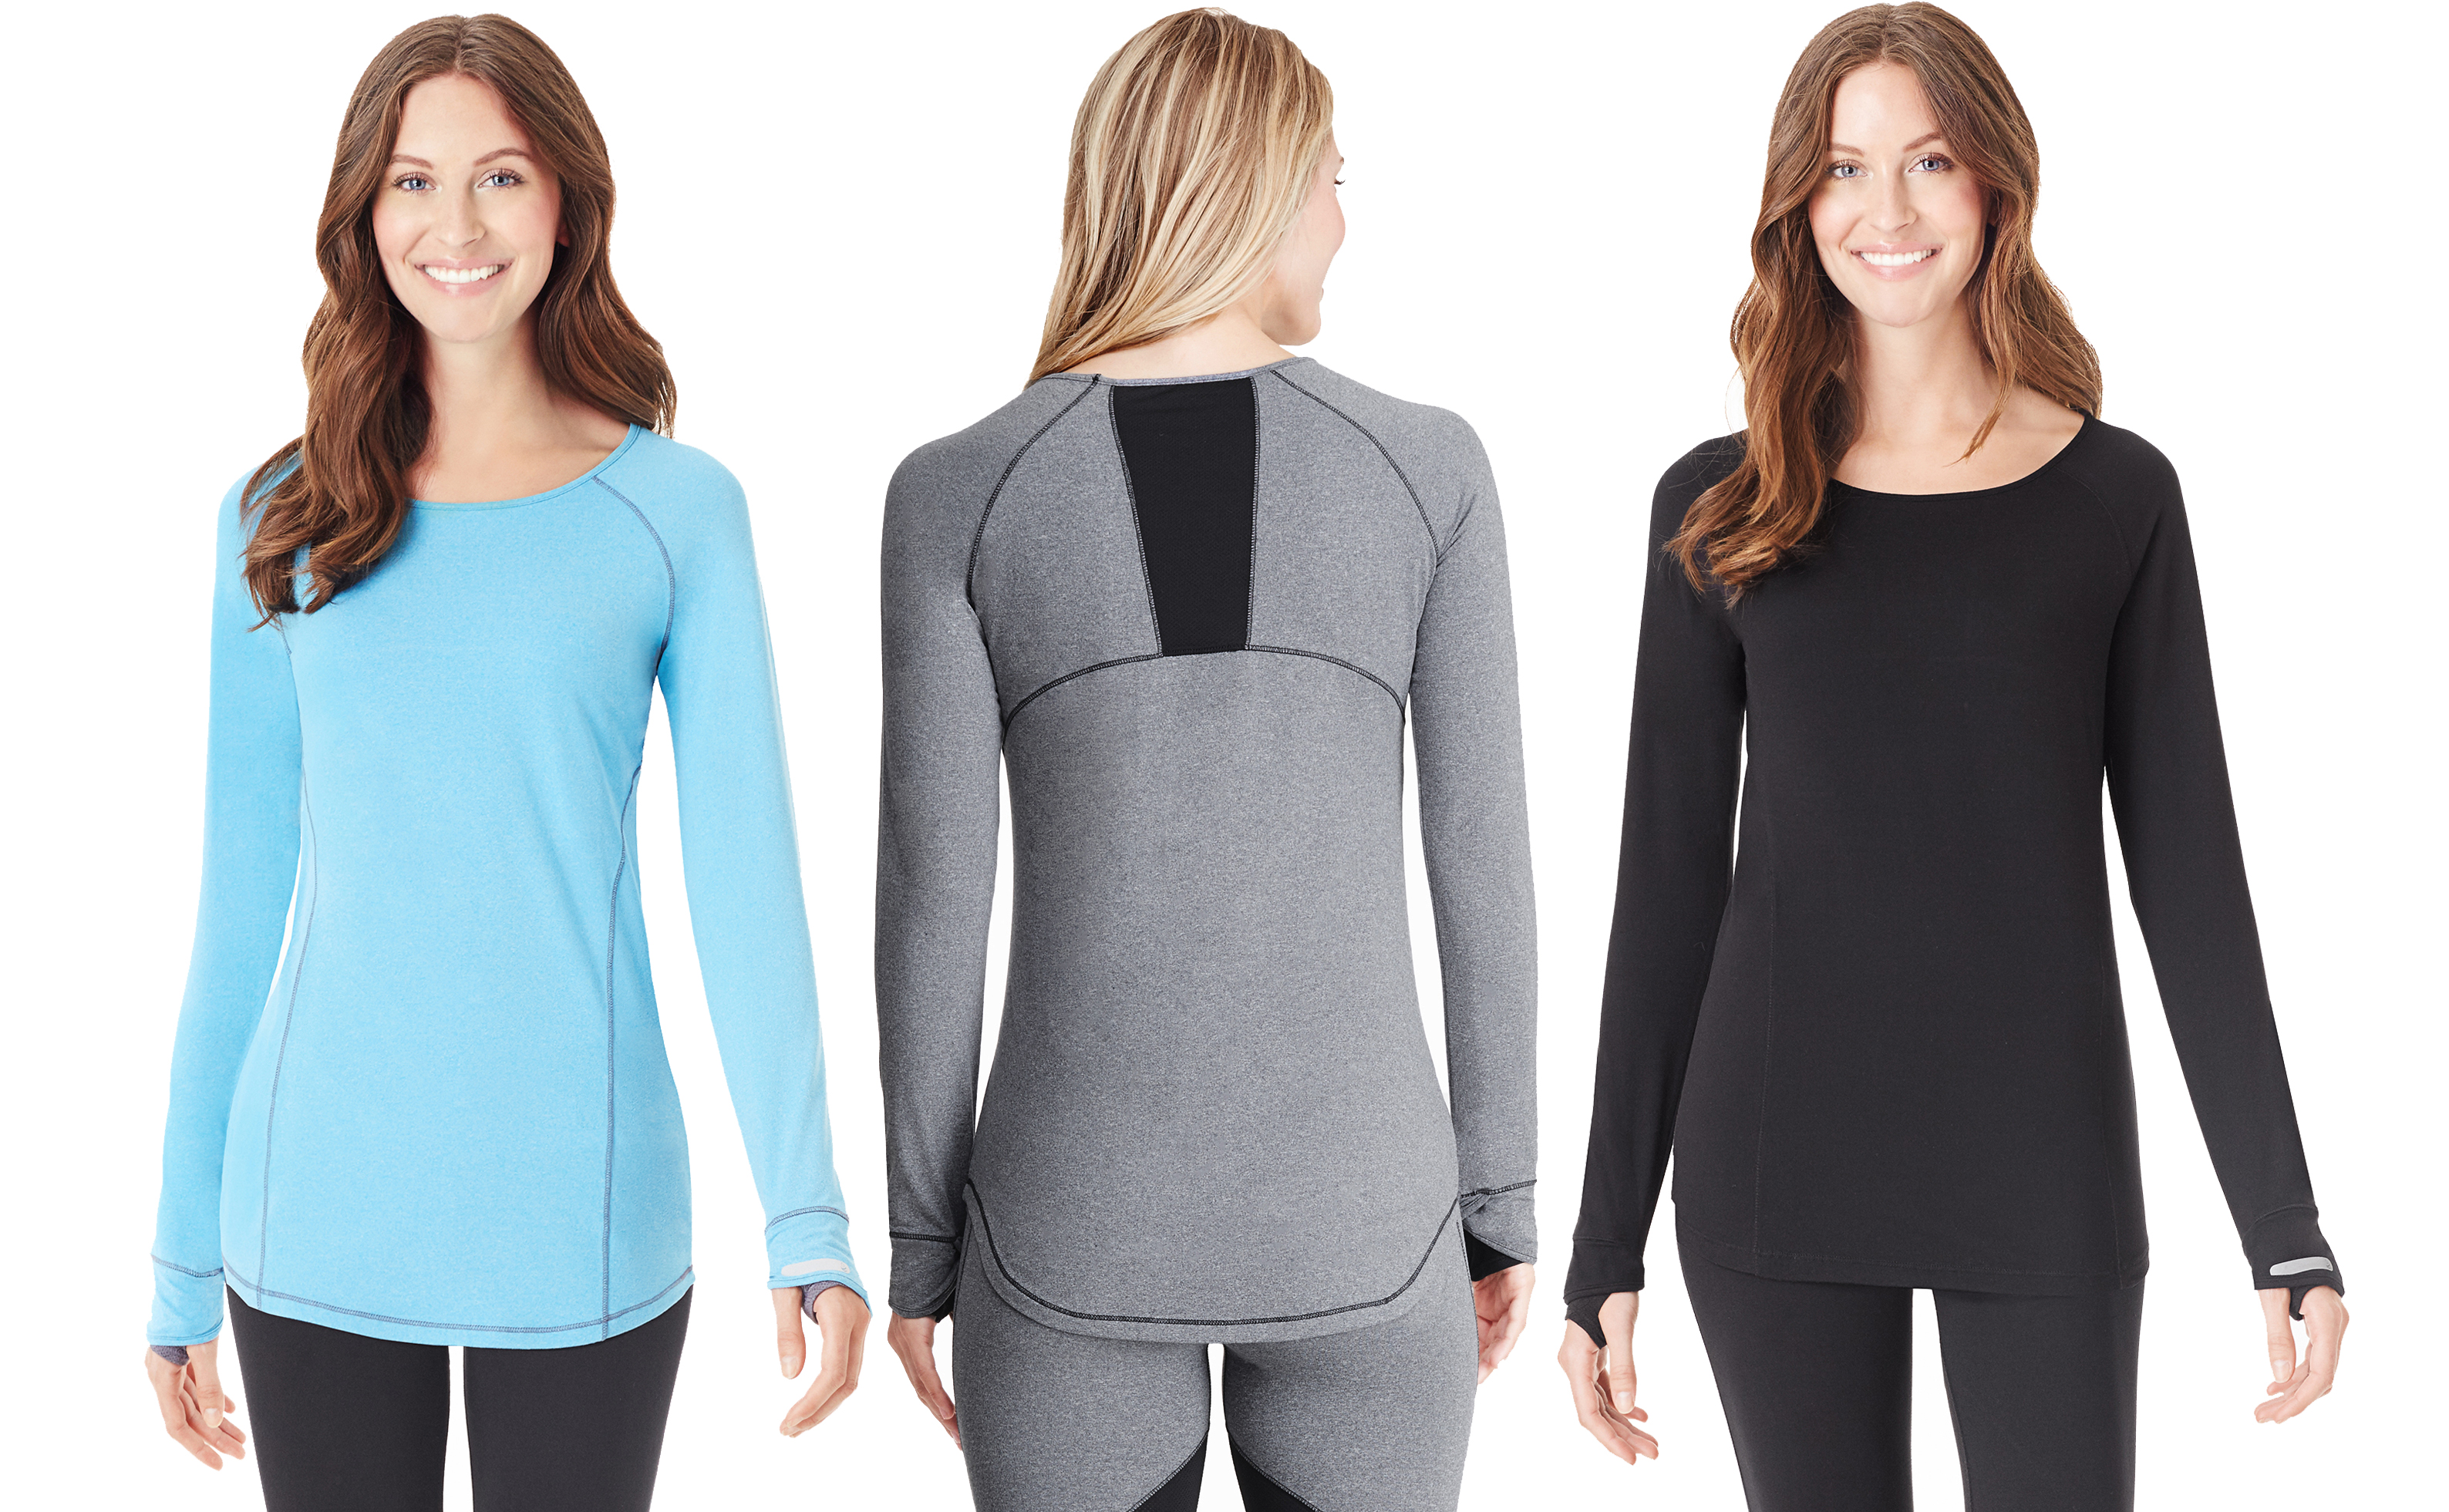 Cuddl Duds Sport Layering in blue grey and black